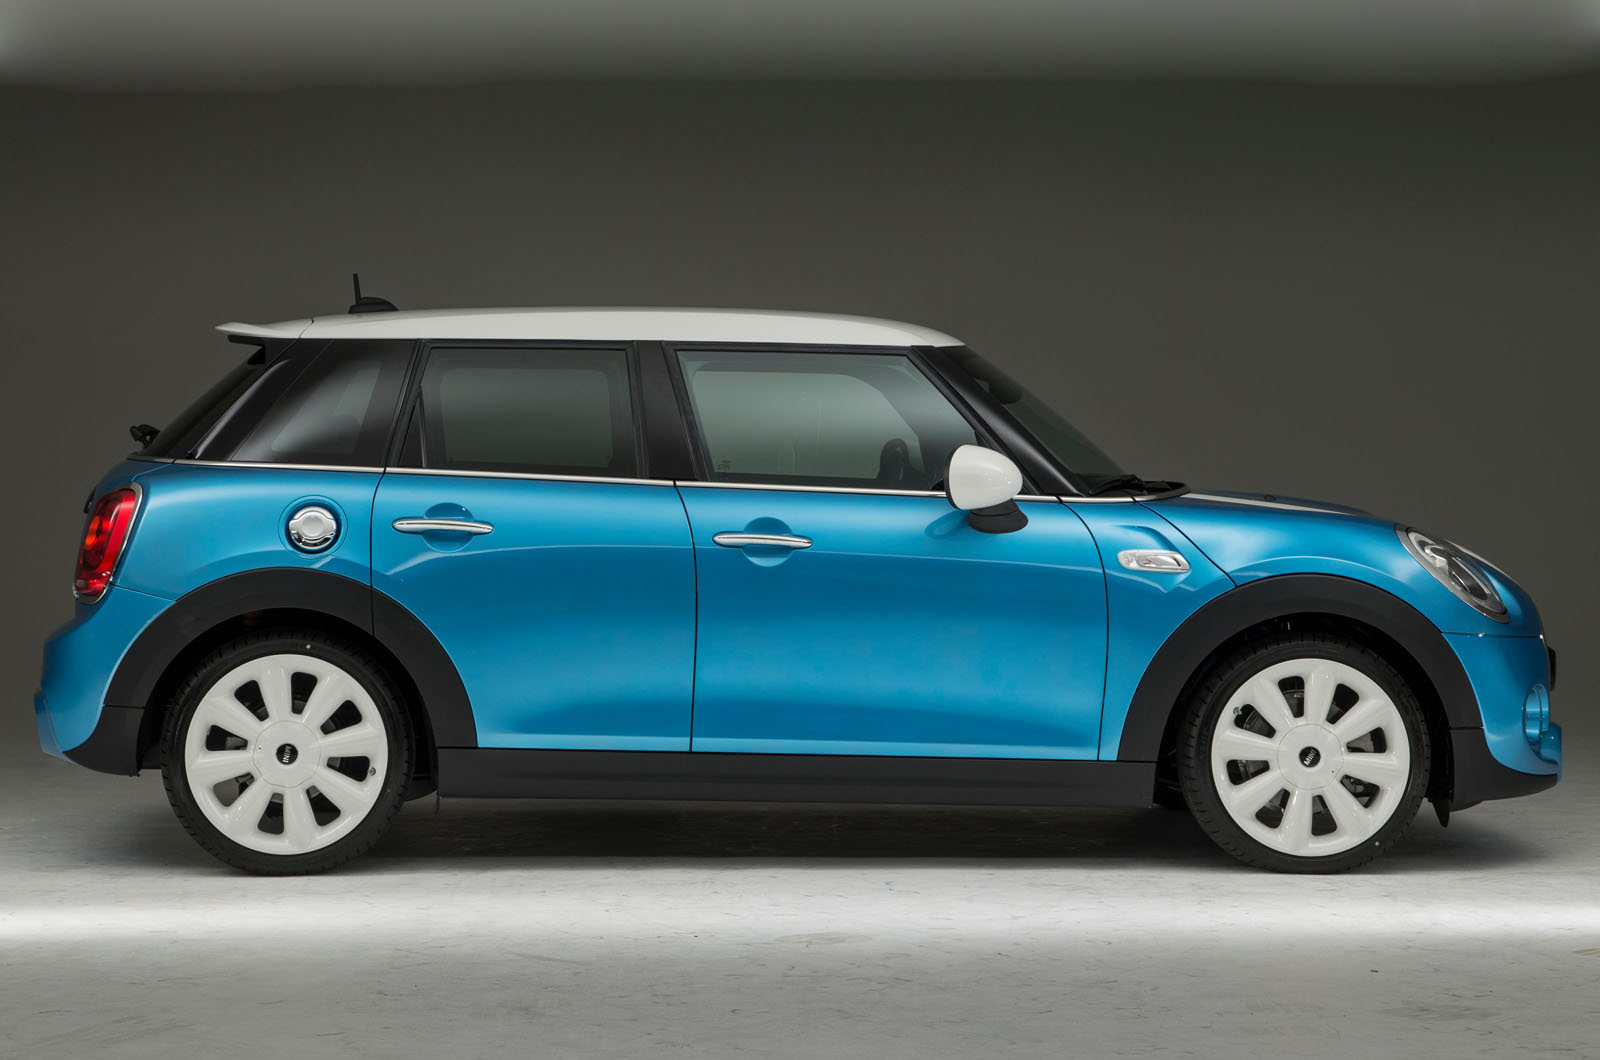 Le Meilleur New Five Door Mini Hatchback Revealed – Exclusive Studio Ce Mois Ci